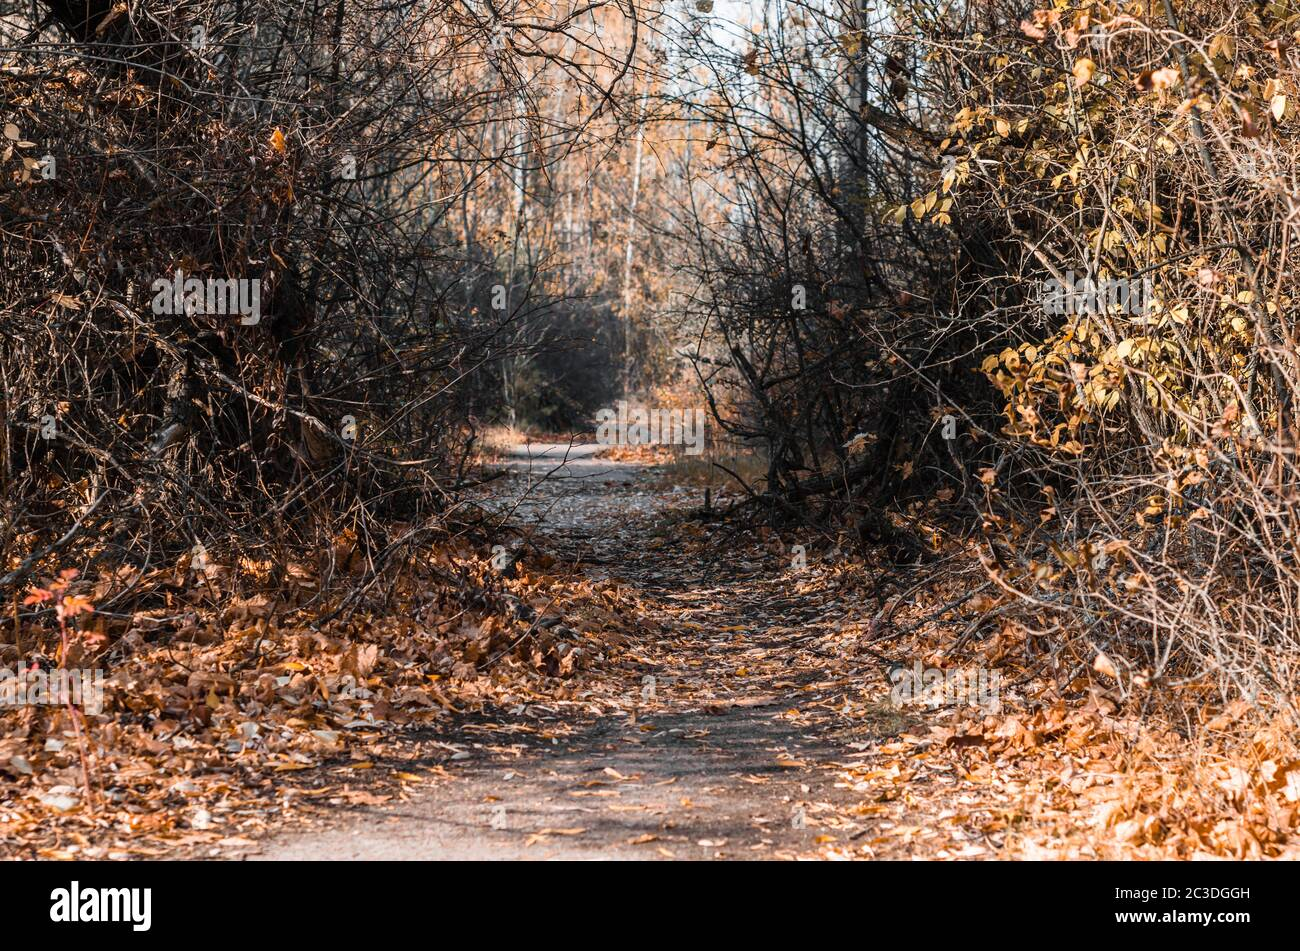 street in the city of Chernobyl in autumn Stock Photo